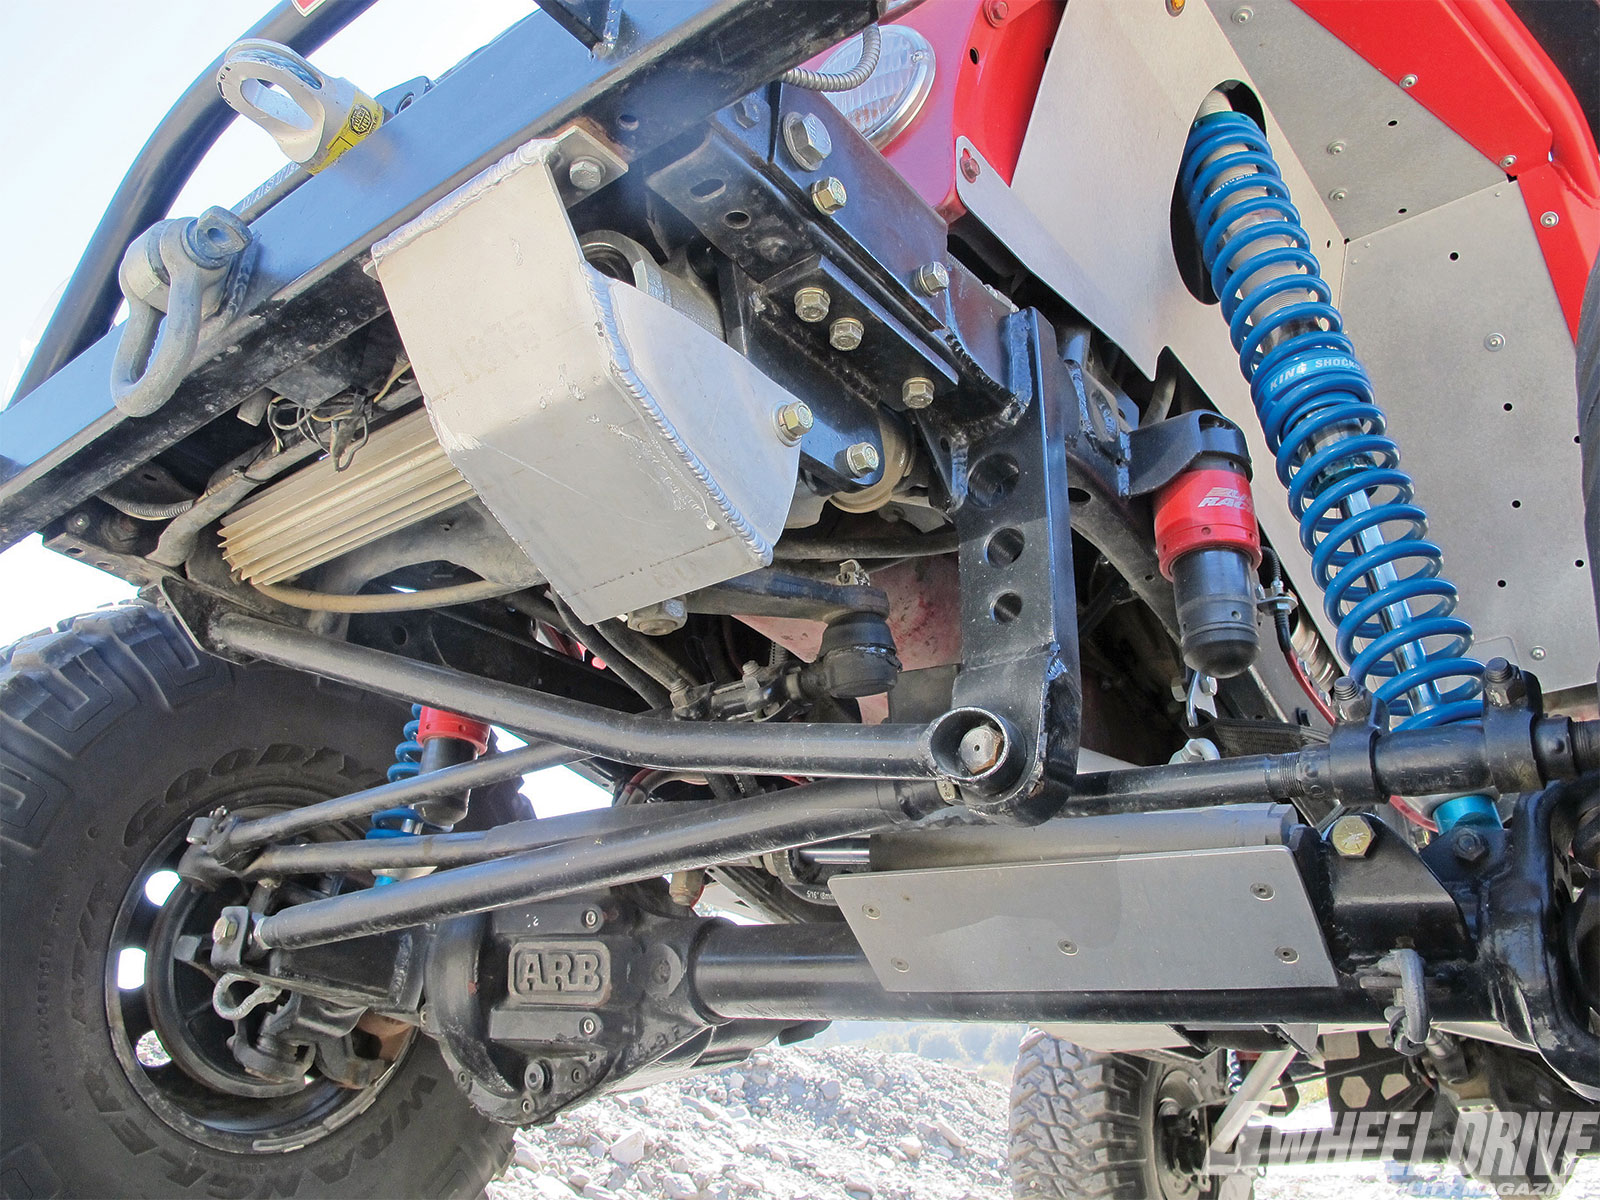 The Tri-County Gear relocated track bar and brace was developed for TJ Wranglers but can be adapted to most custom link/coilover applications. It's a strong and well-designed setup. Tri-County Gear also installed the Light Racing JounceShocks, which serve as active bumpstops.